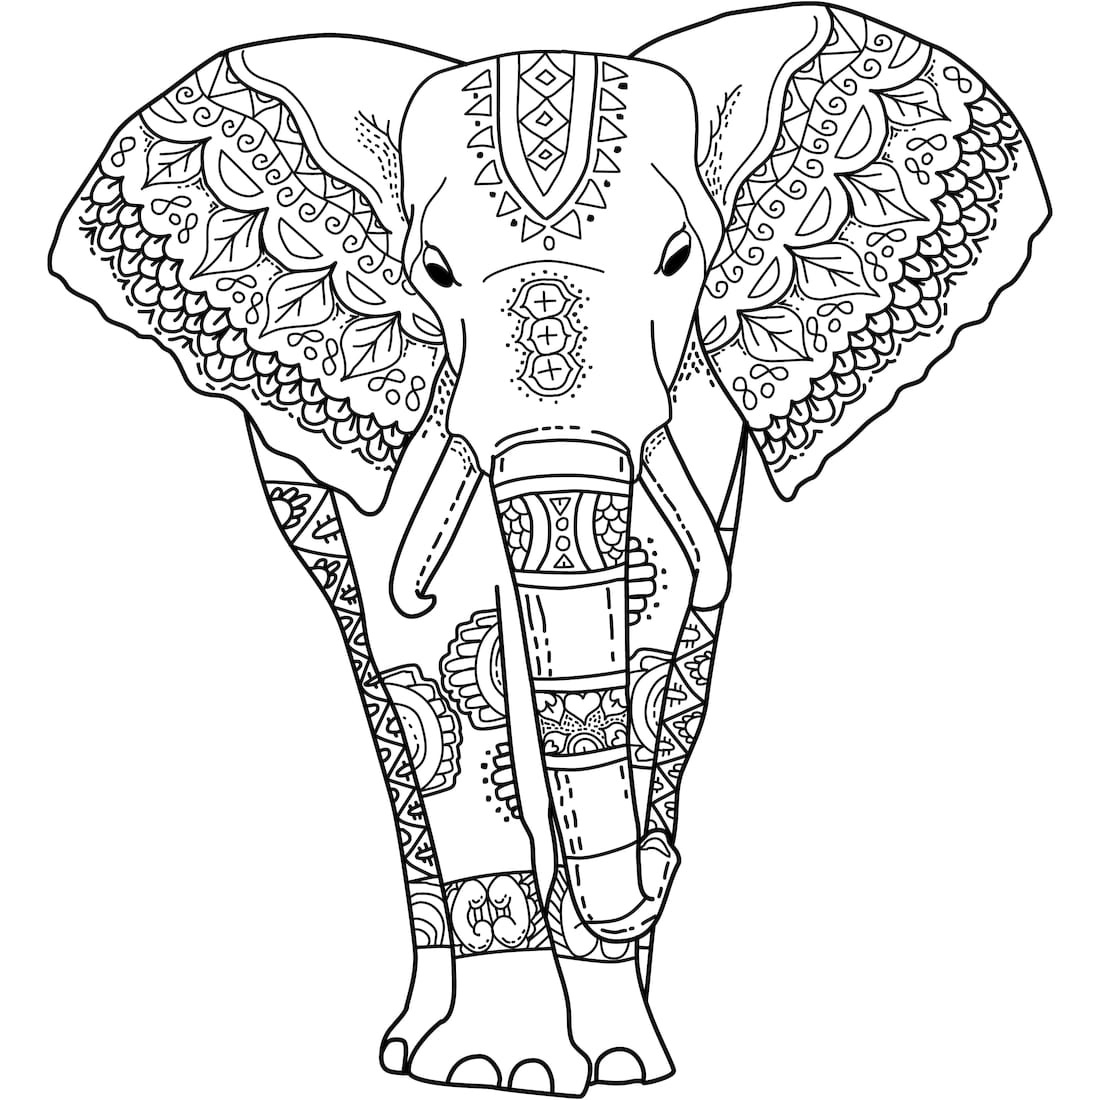 elephant coloring sheets printable elephant coloring pages for adults best coloring pages coloring sheets elephant printable